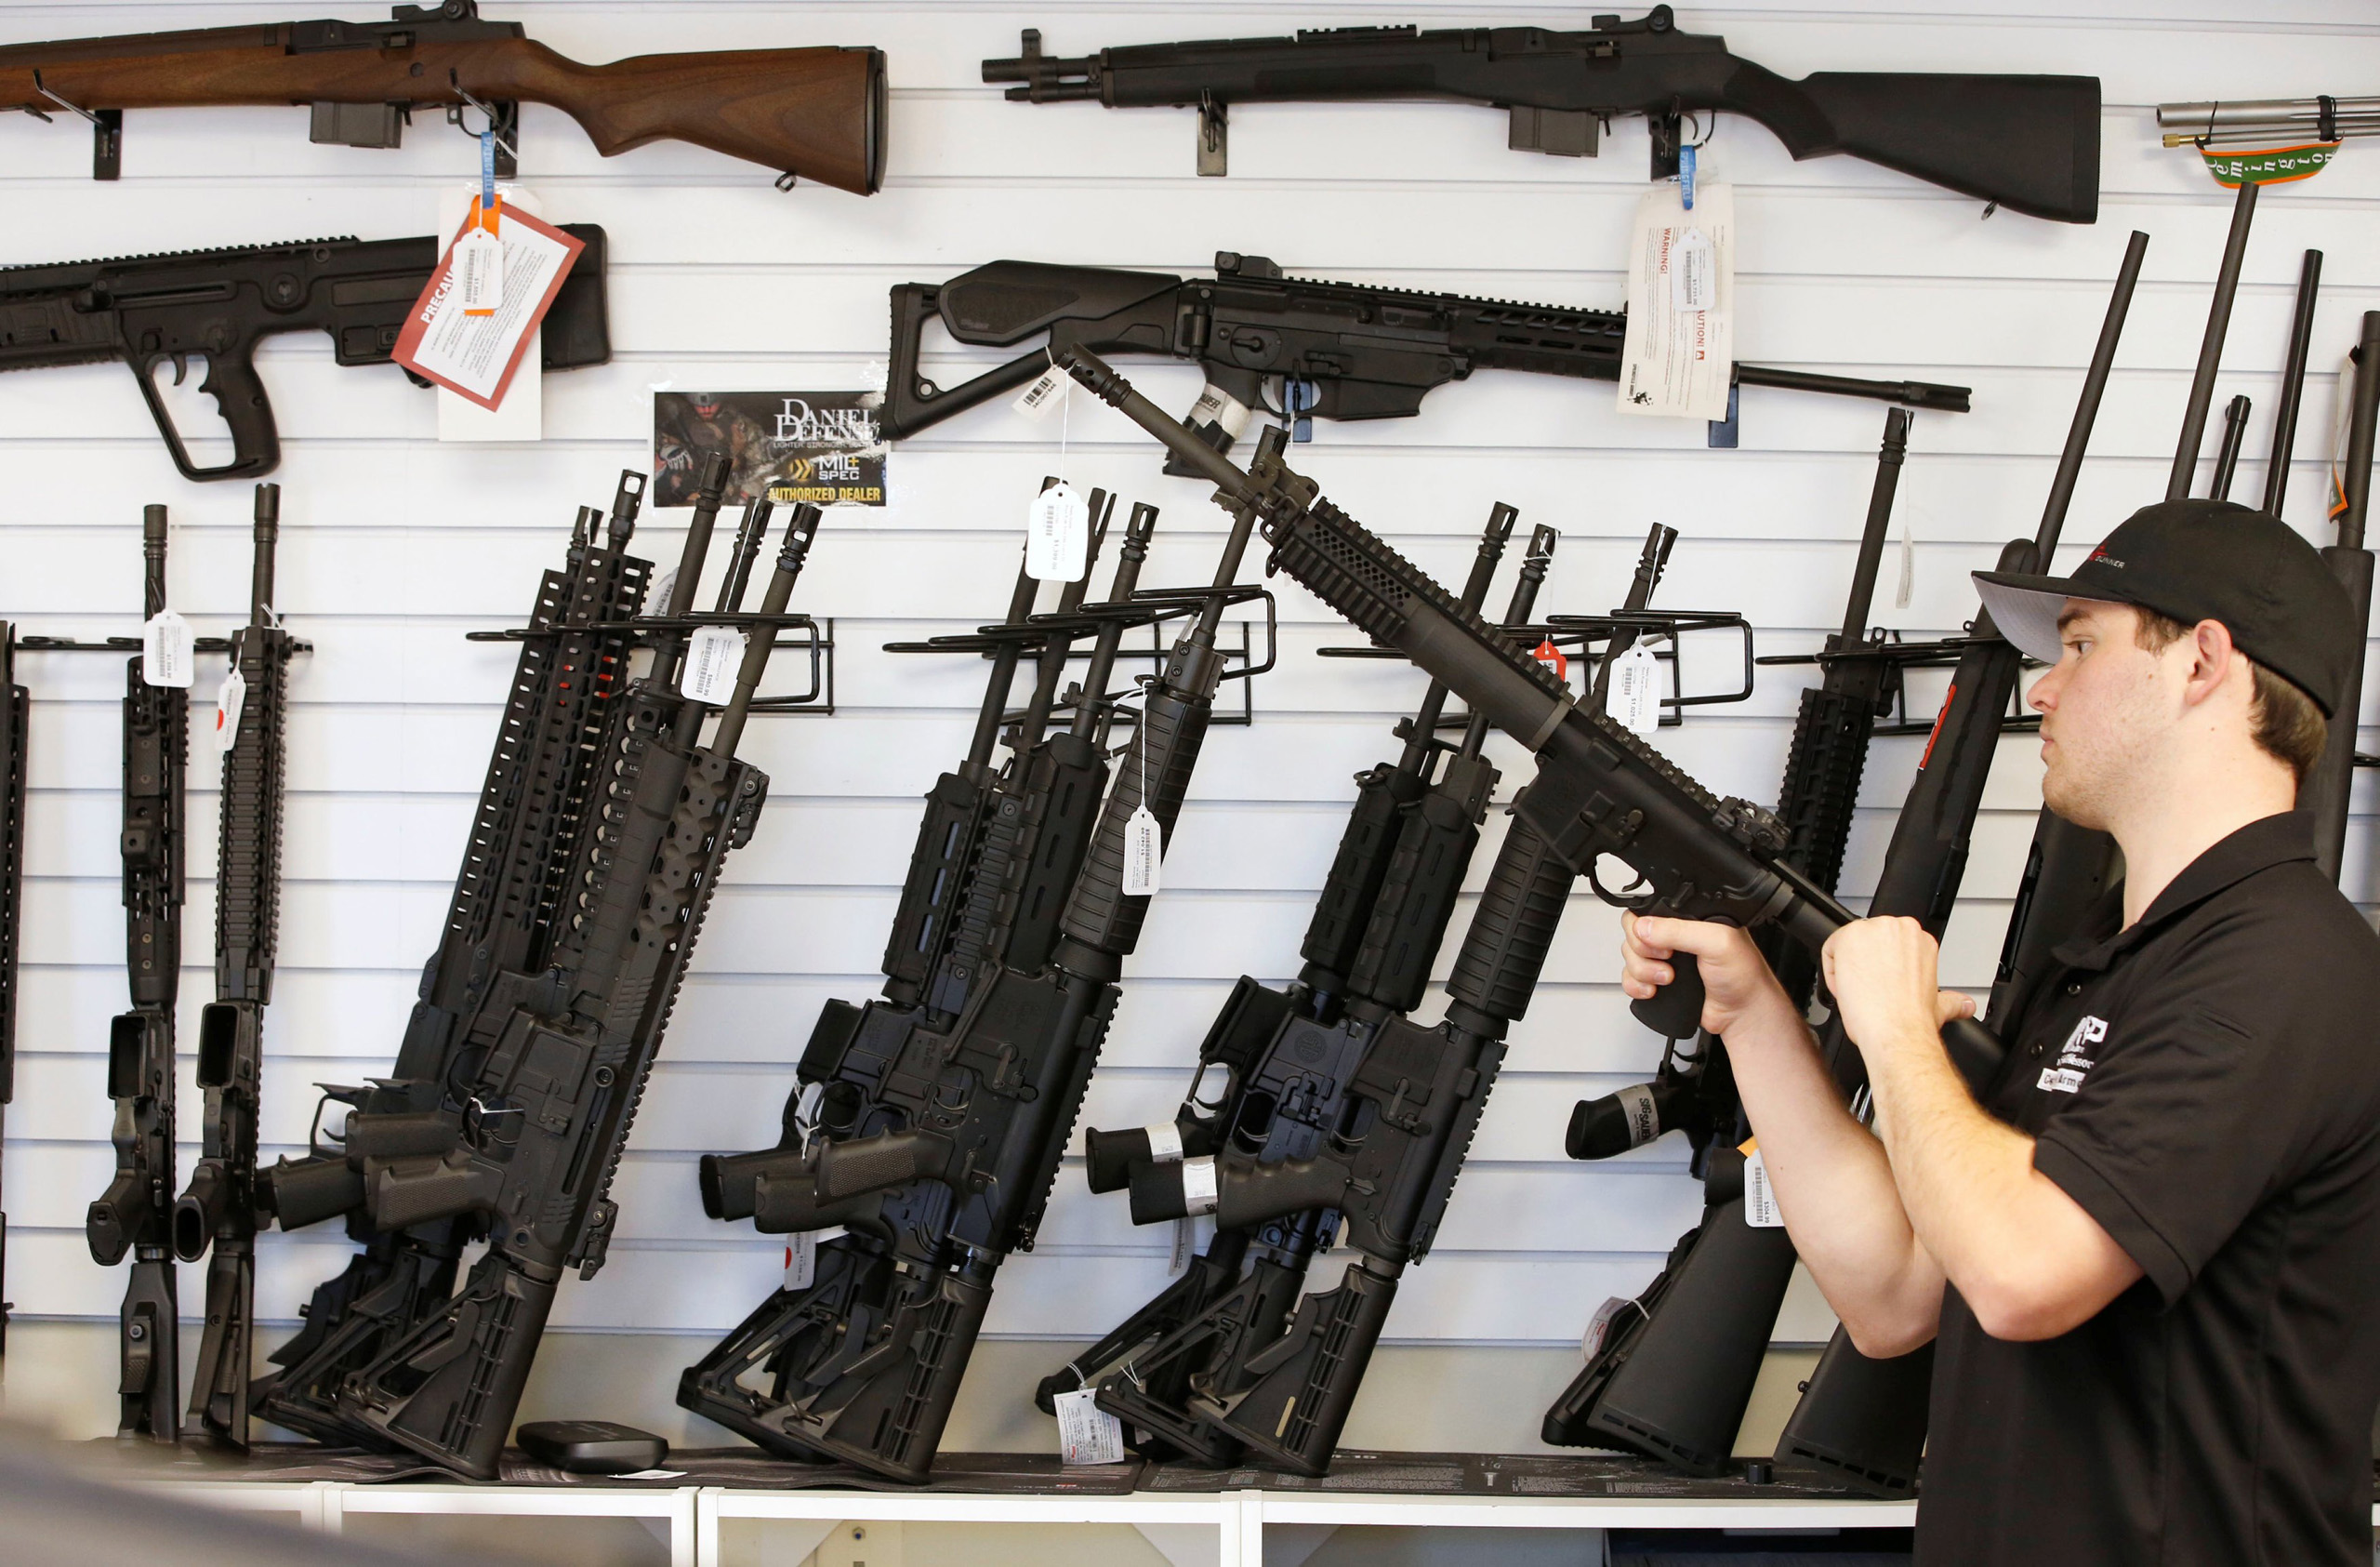 A salesman clears the chamber of an AR-15 at the  Ready Gunner  gun store in Provo, Utah on June 21, 2016.